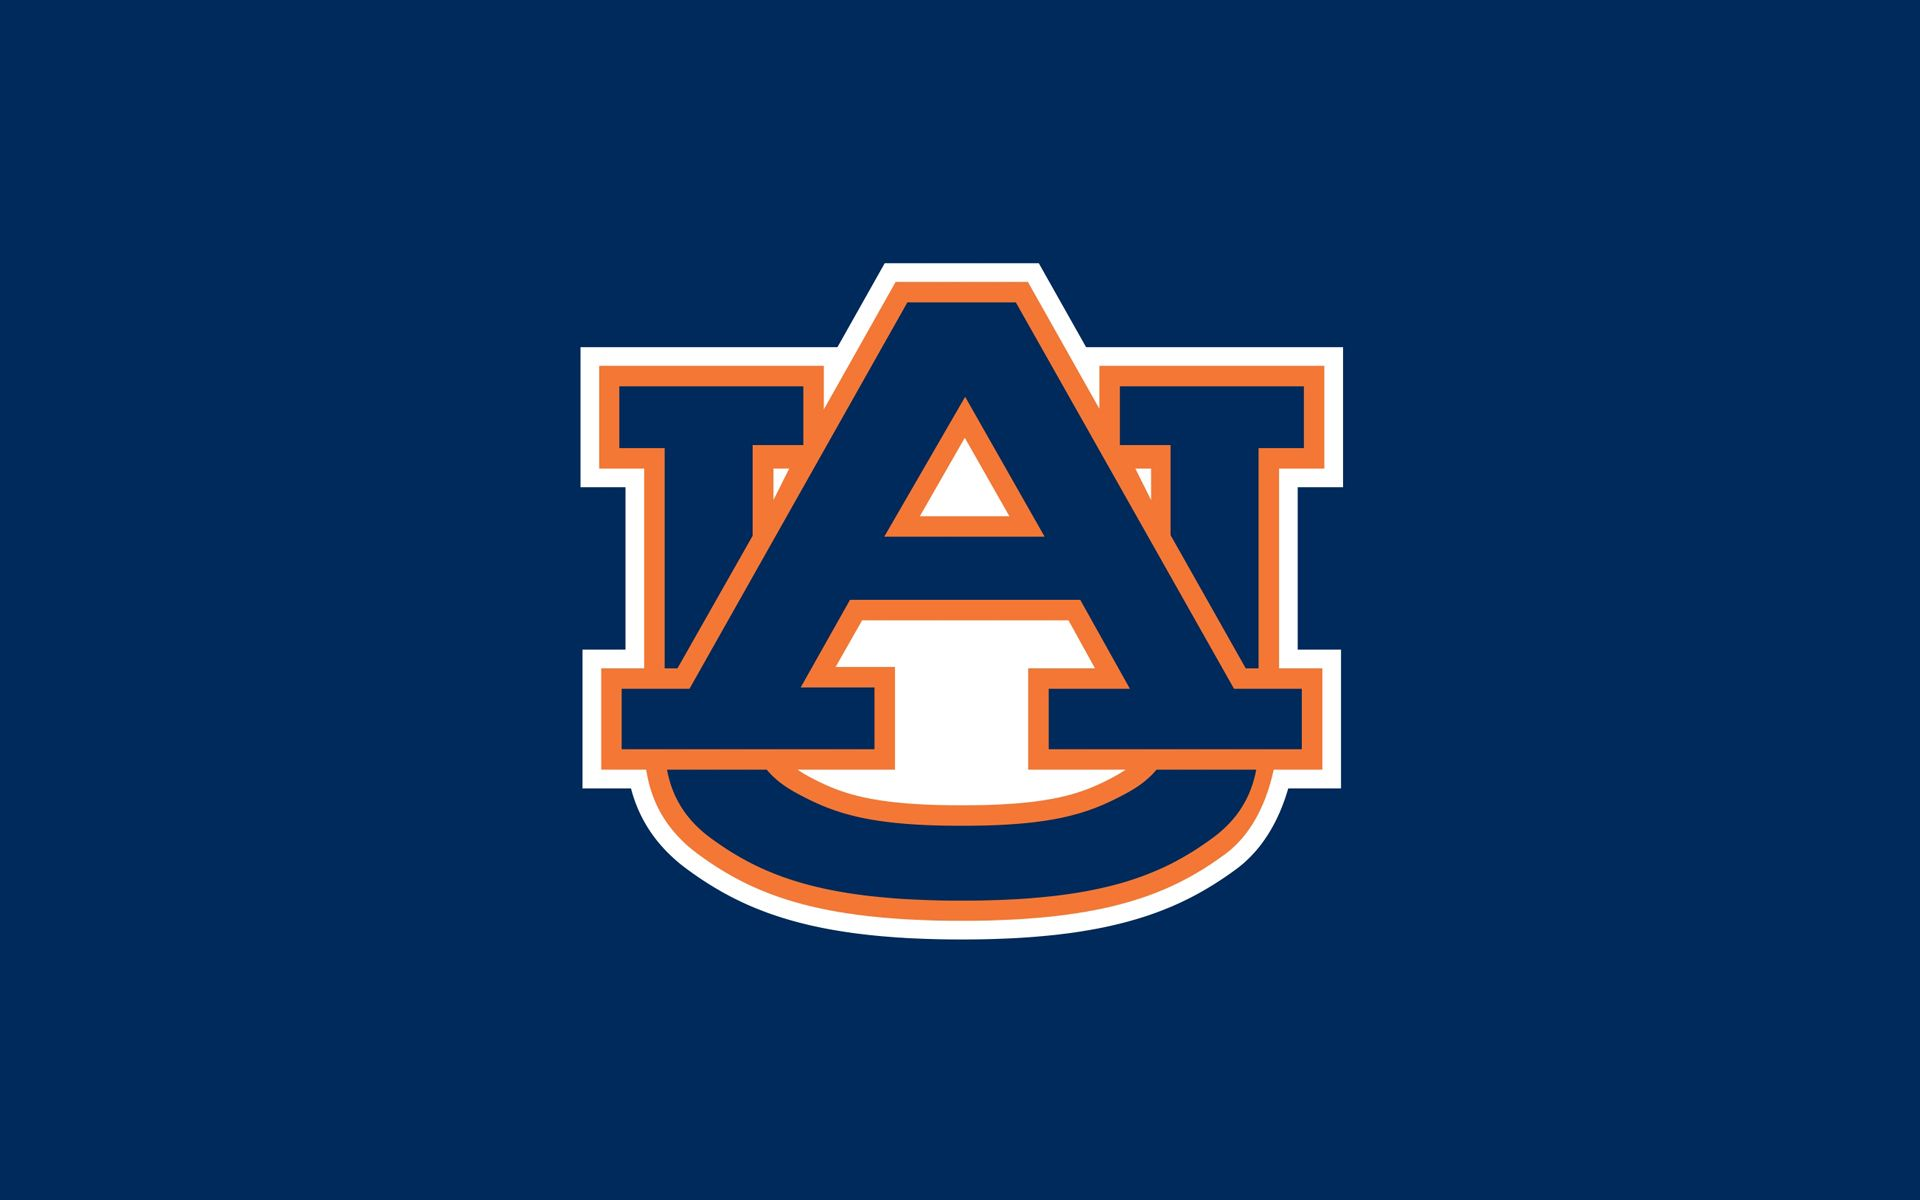 auburn football logo wallpaper auburn tigers logo blue picture rh pinterest com auburn football logo wallpaper auburn football logo png